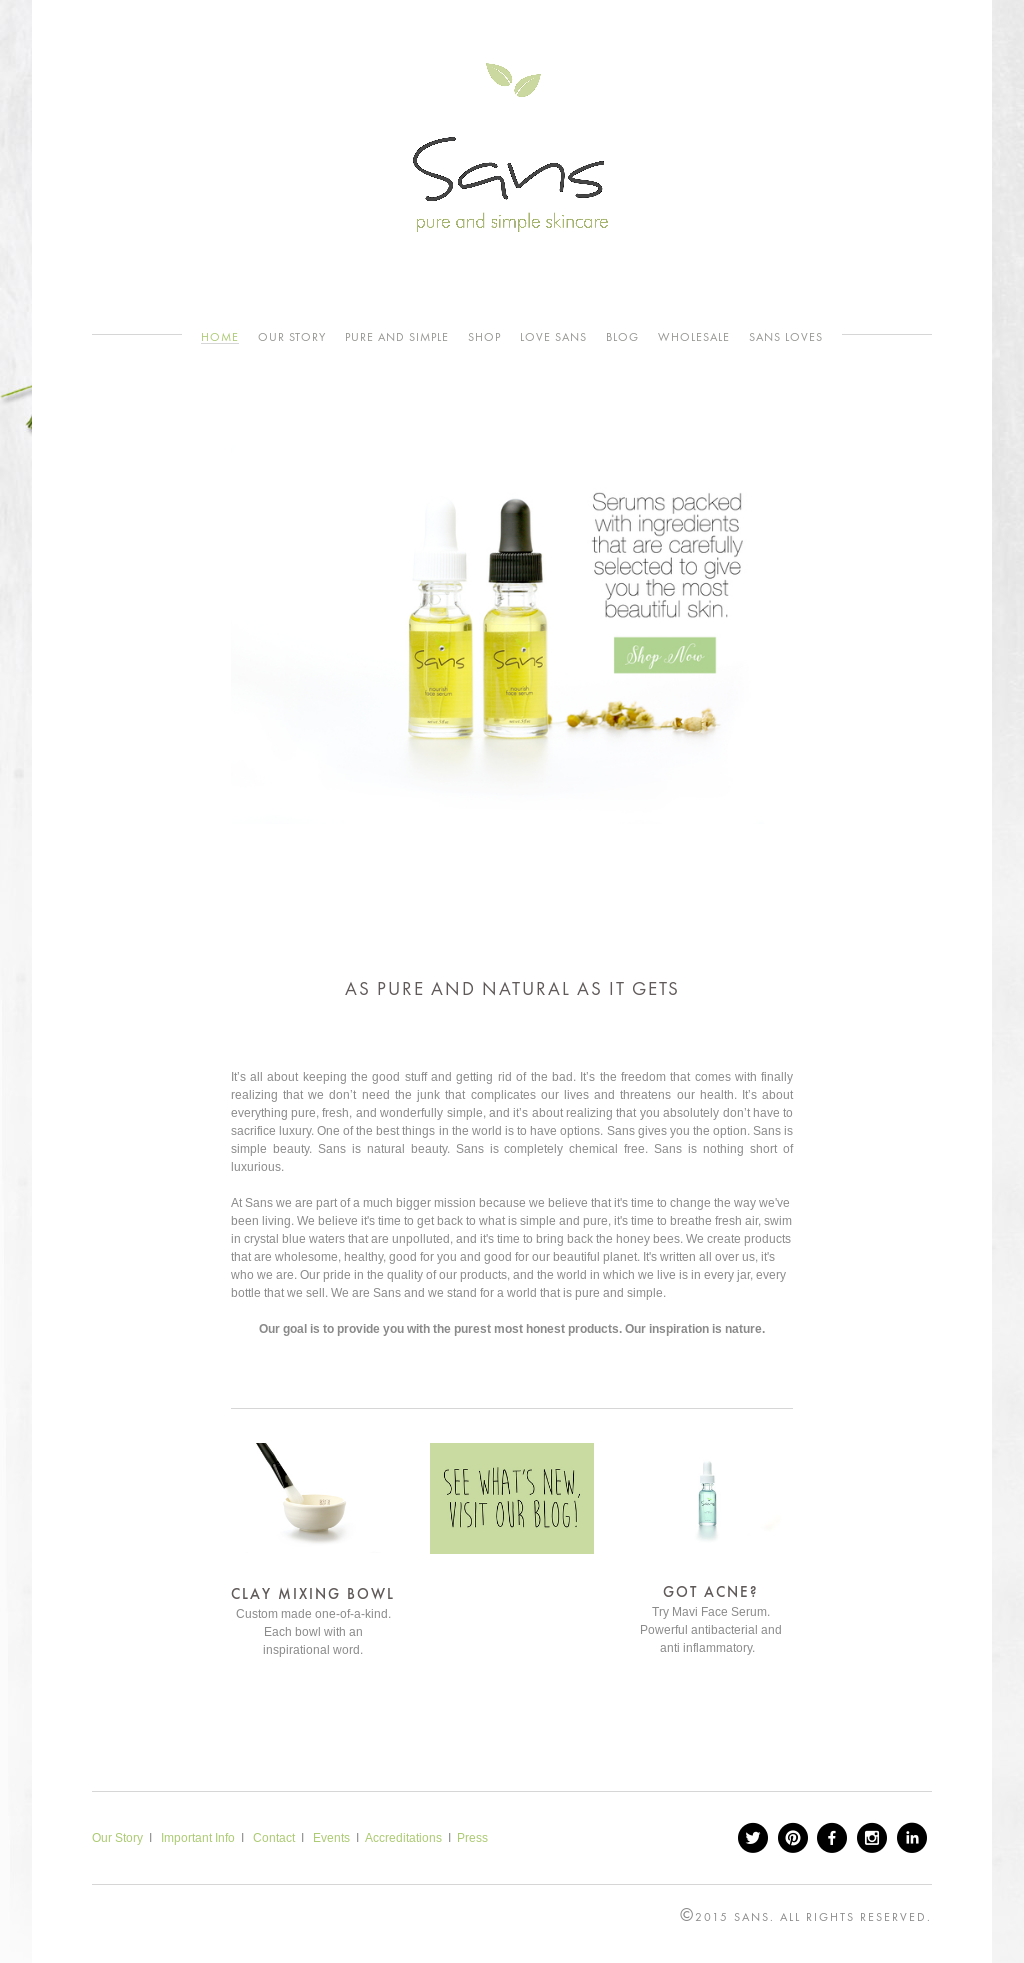 Sans - Skincare Without Chemicals Competitors, Revenue and Employees